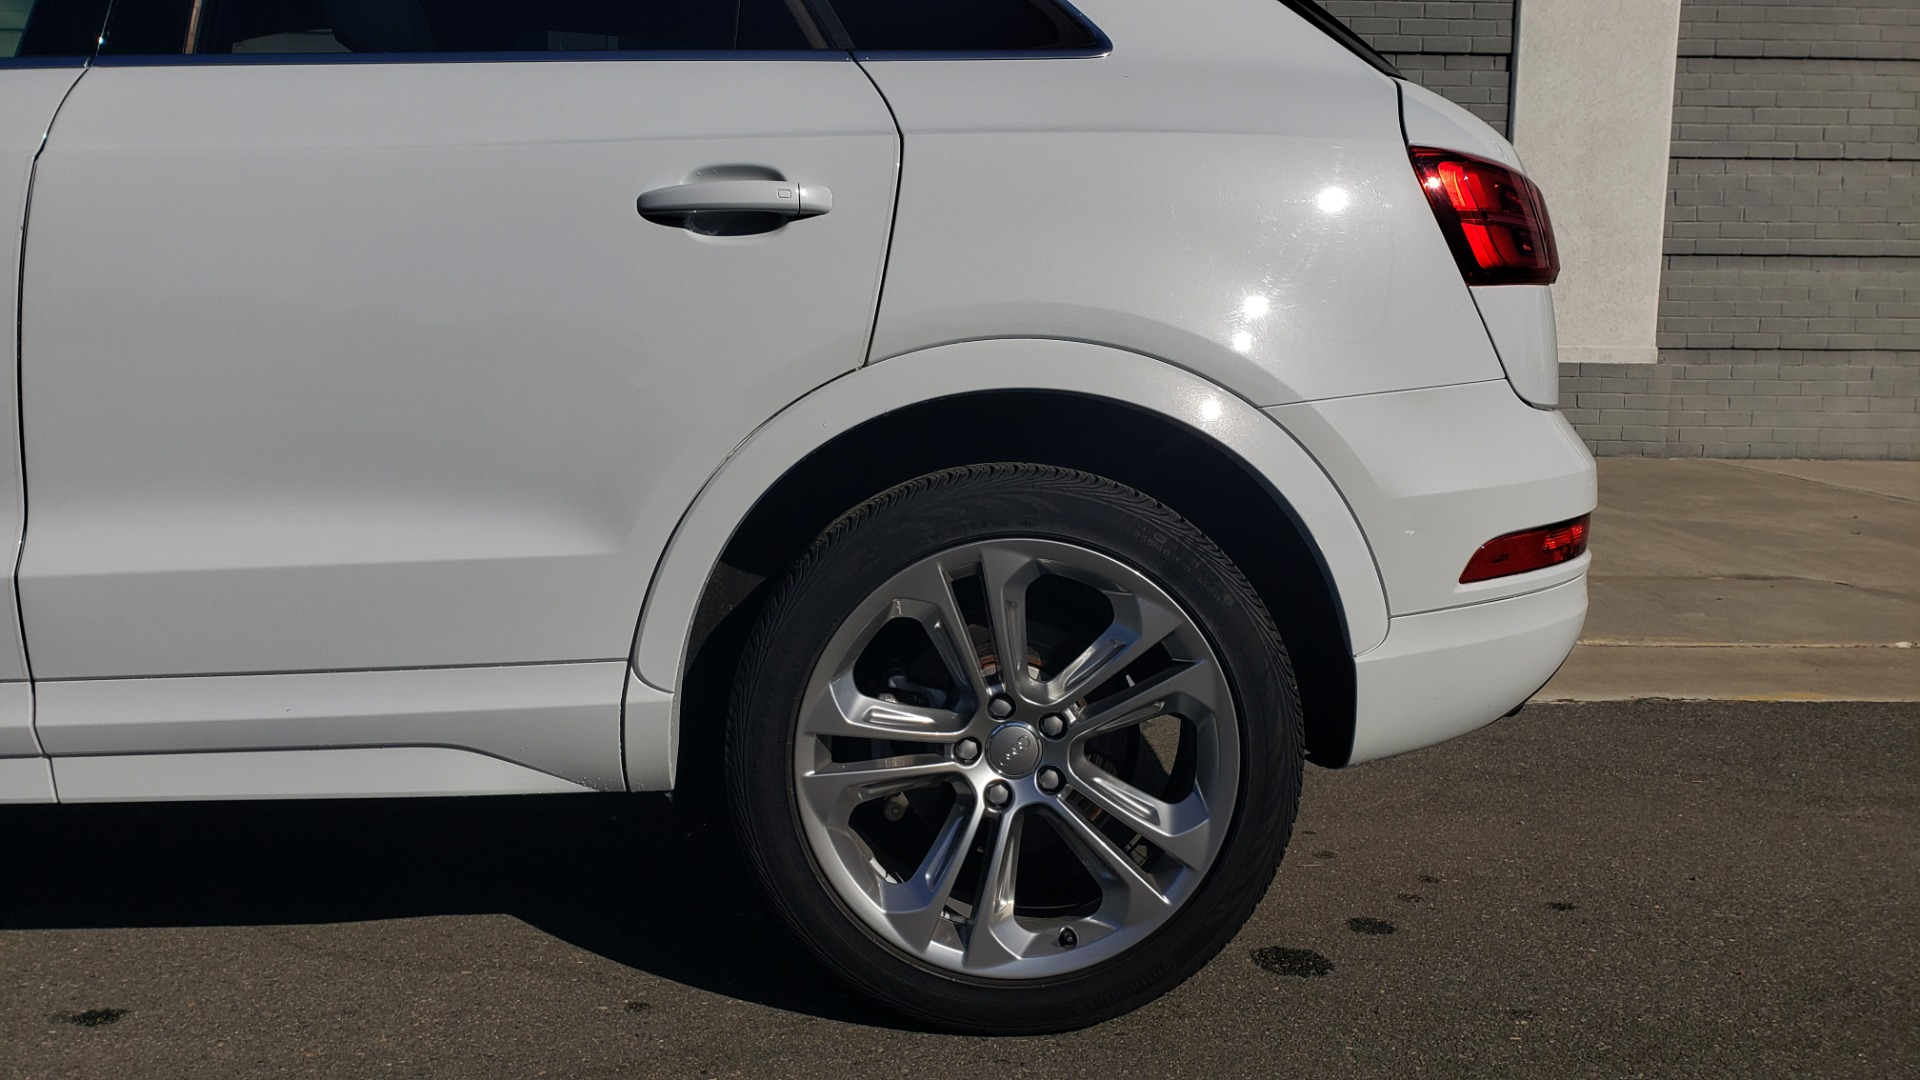 Used 2018 Audi Q3 PREMIUM PLUS 2.0T / SPORT PKG / NAV / BOSE / SUNROOF / REARVIEW for sale Sold at Formula Imports in Charlotte NC 28227 72